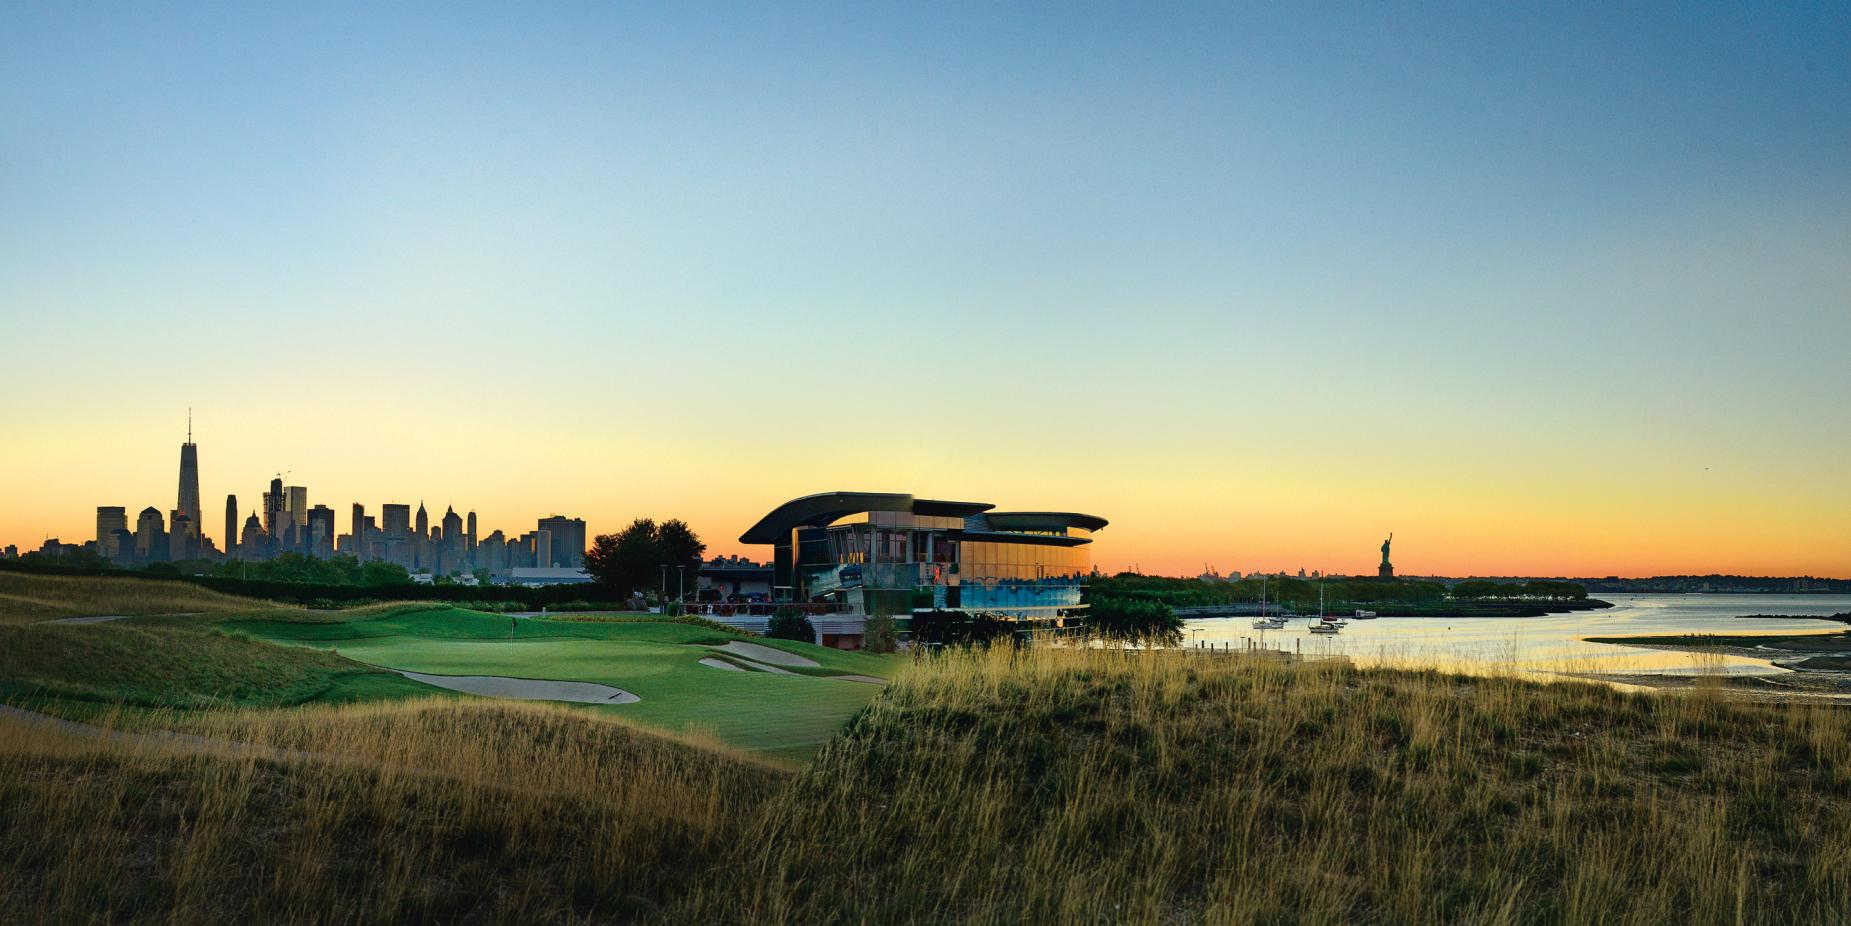 Liberty-National-Golf-Clubhouse-and-14th-green.jpg